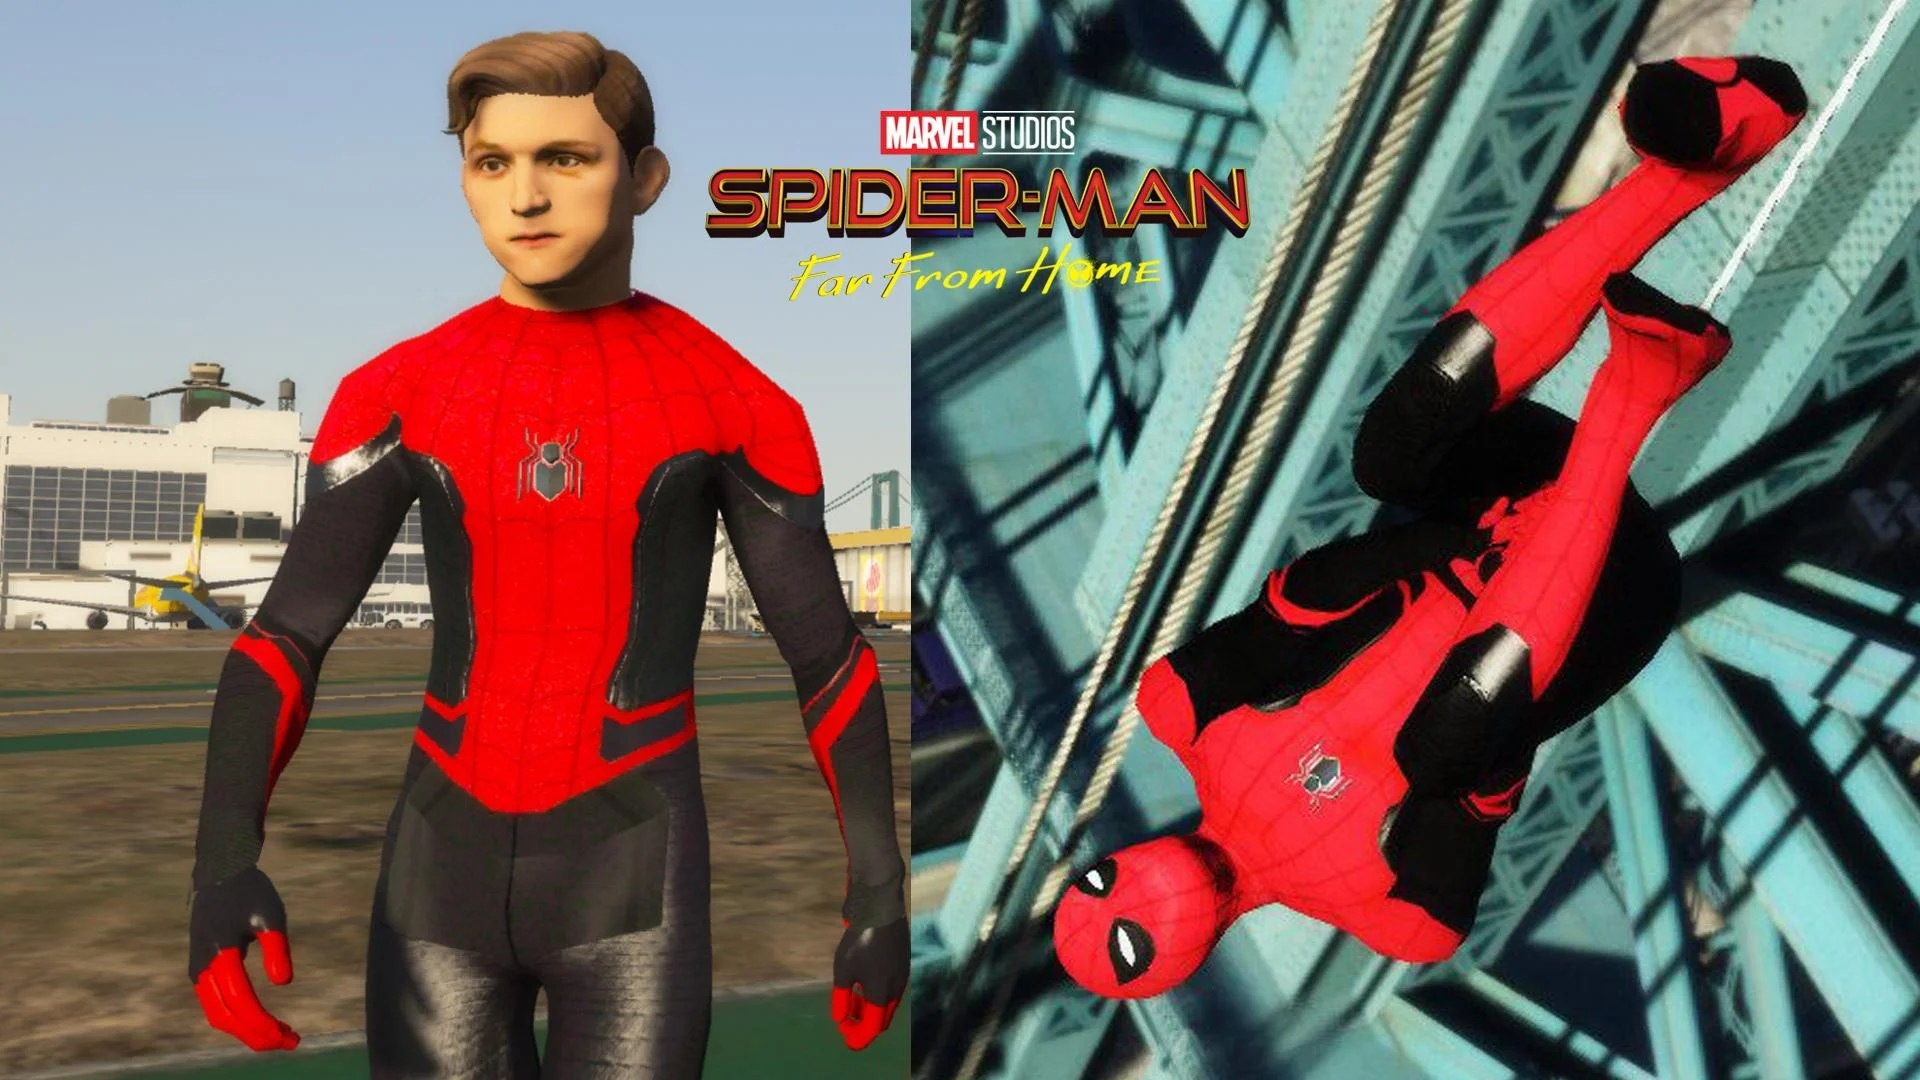 Gta 5 Cheats Ps4 Nederlands Spider-man Far From Home (tom Holland) - Gta5-mods.com